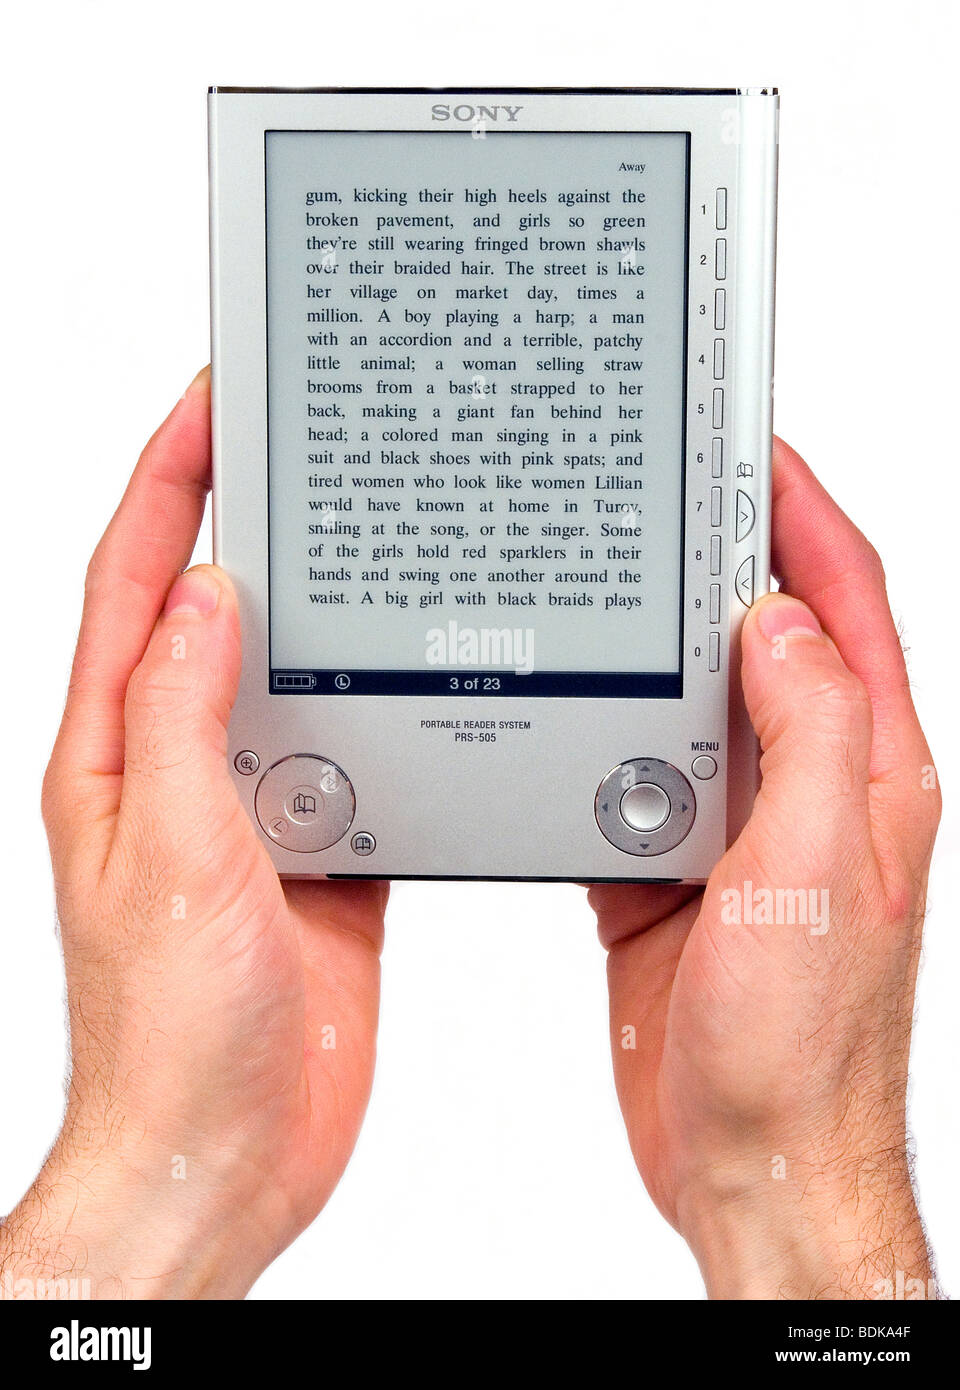 Hands holding Sony Reader, a digital electronic portable book storage and reading device - Stock Image